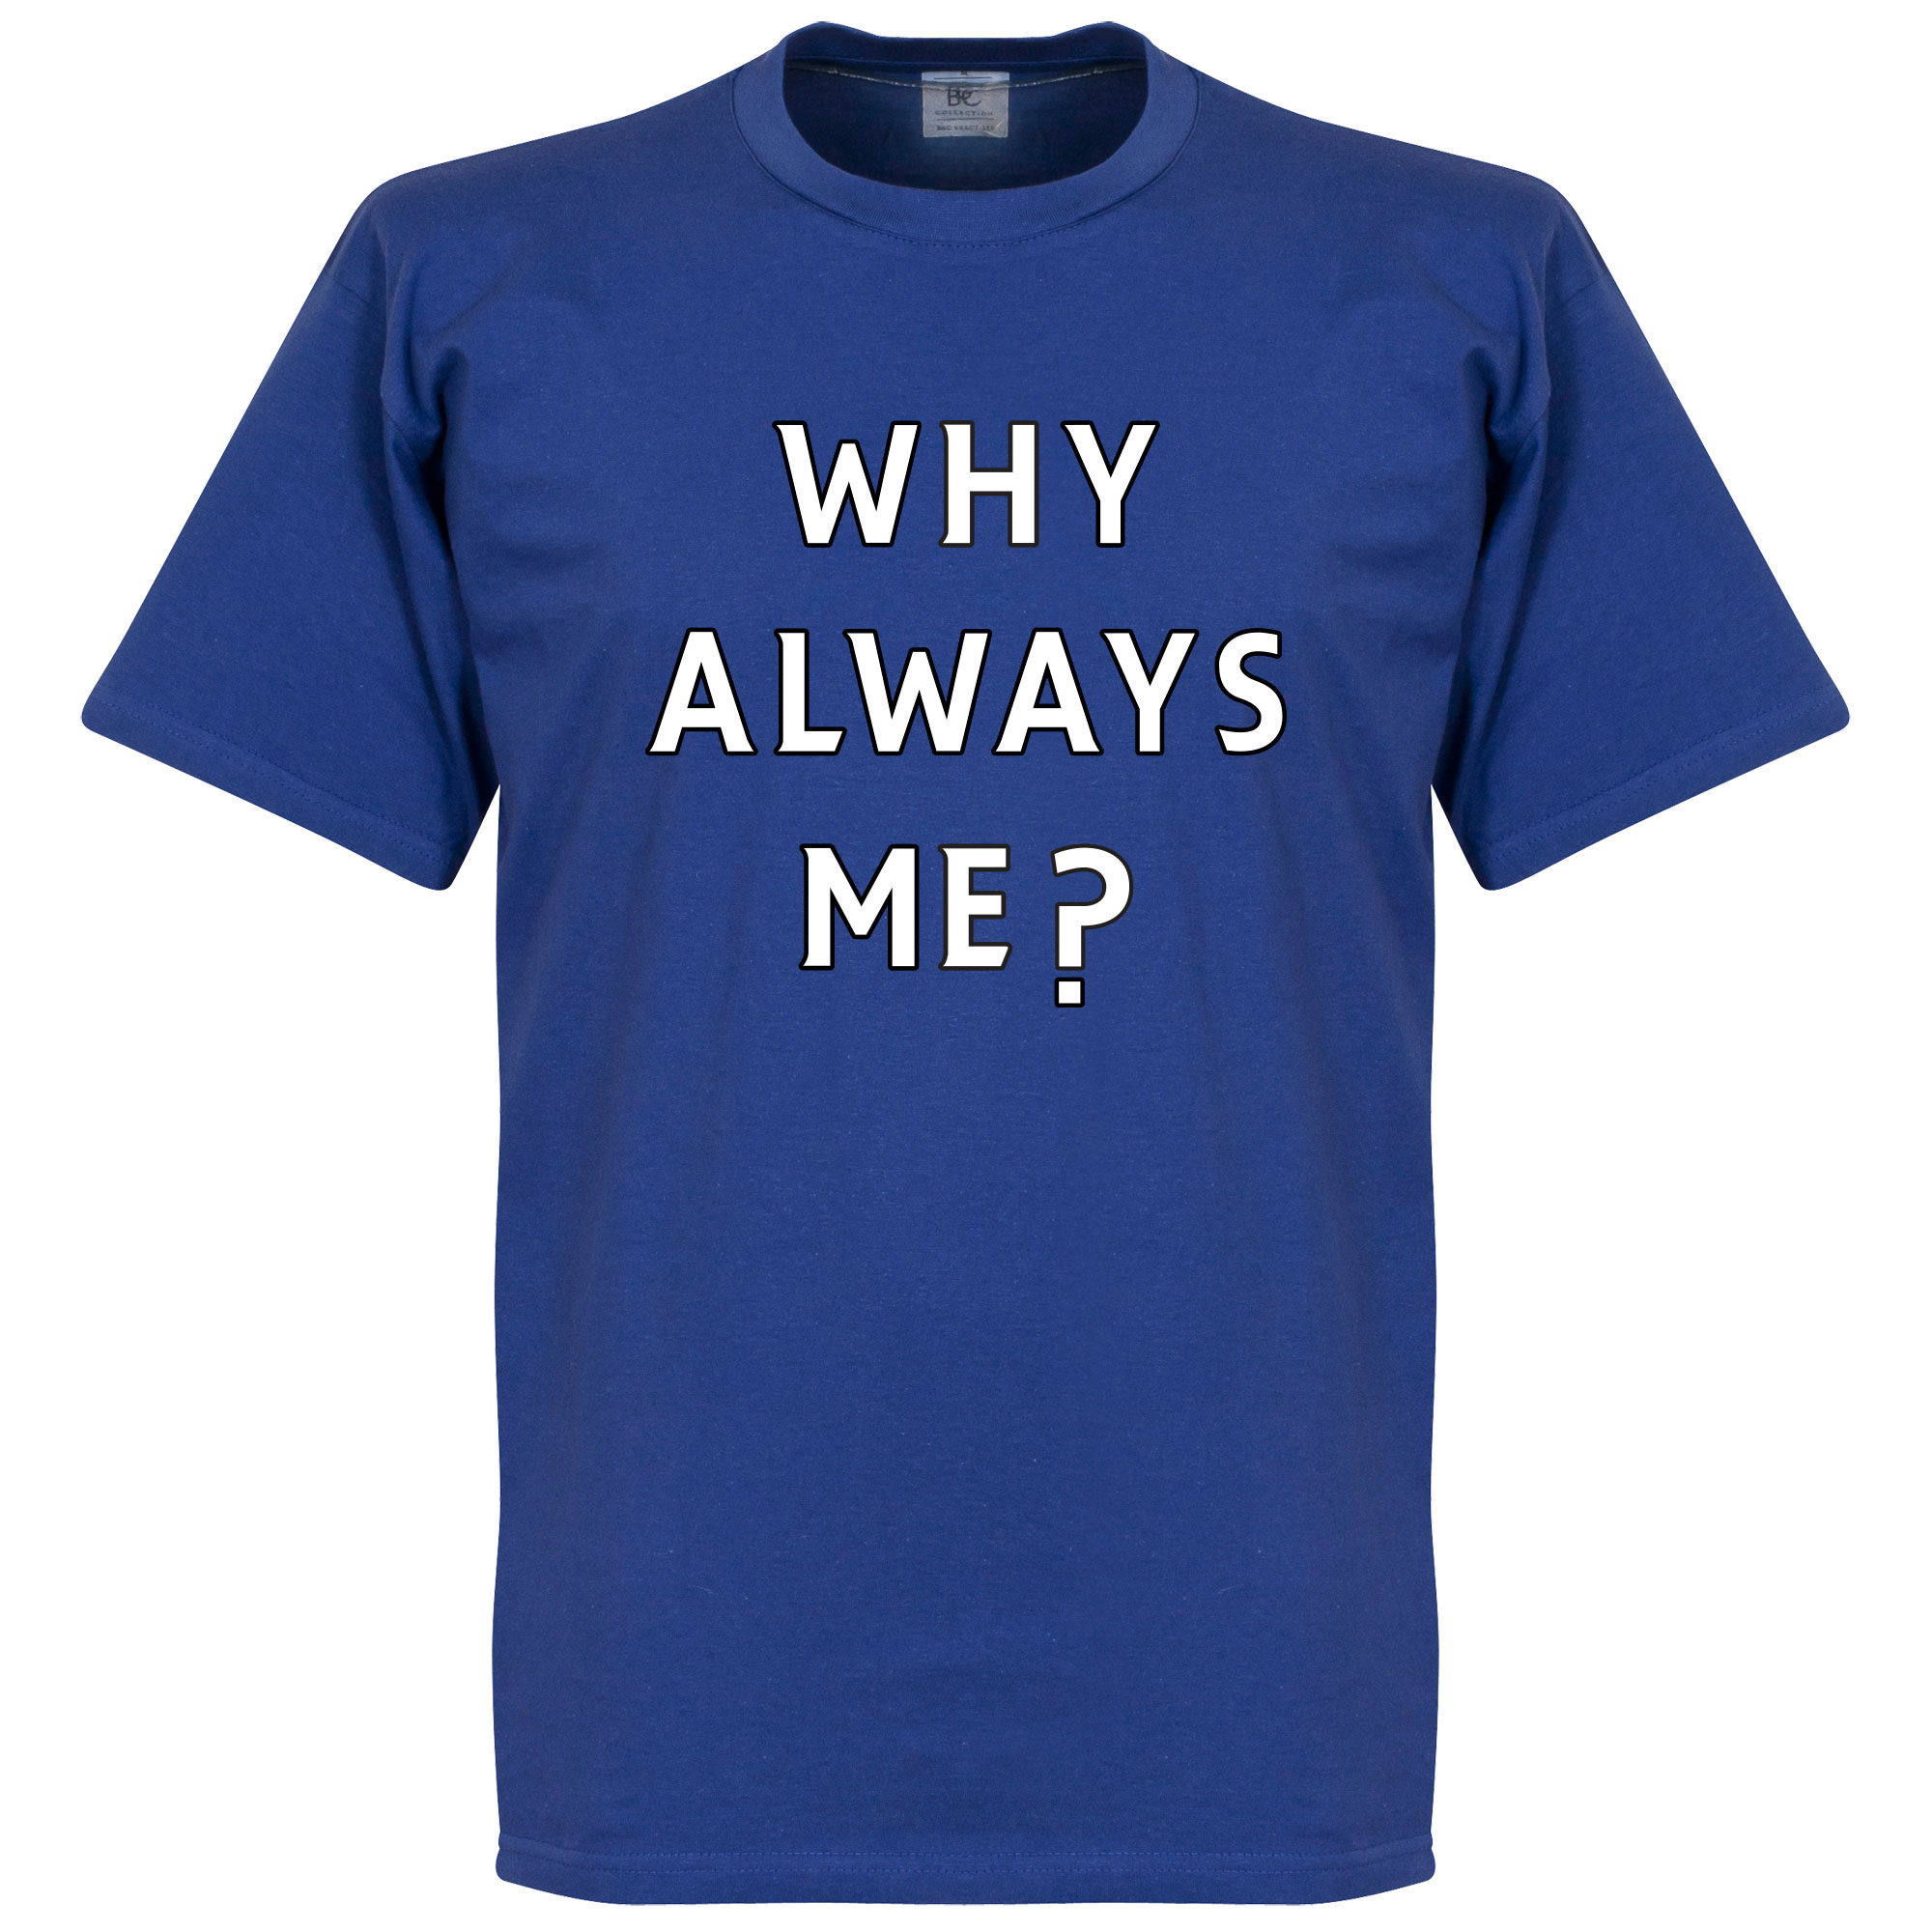 Why Always Me? Tee - Royal - M